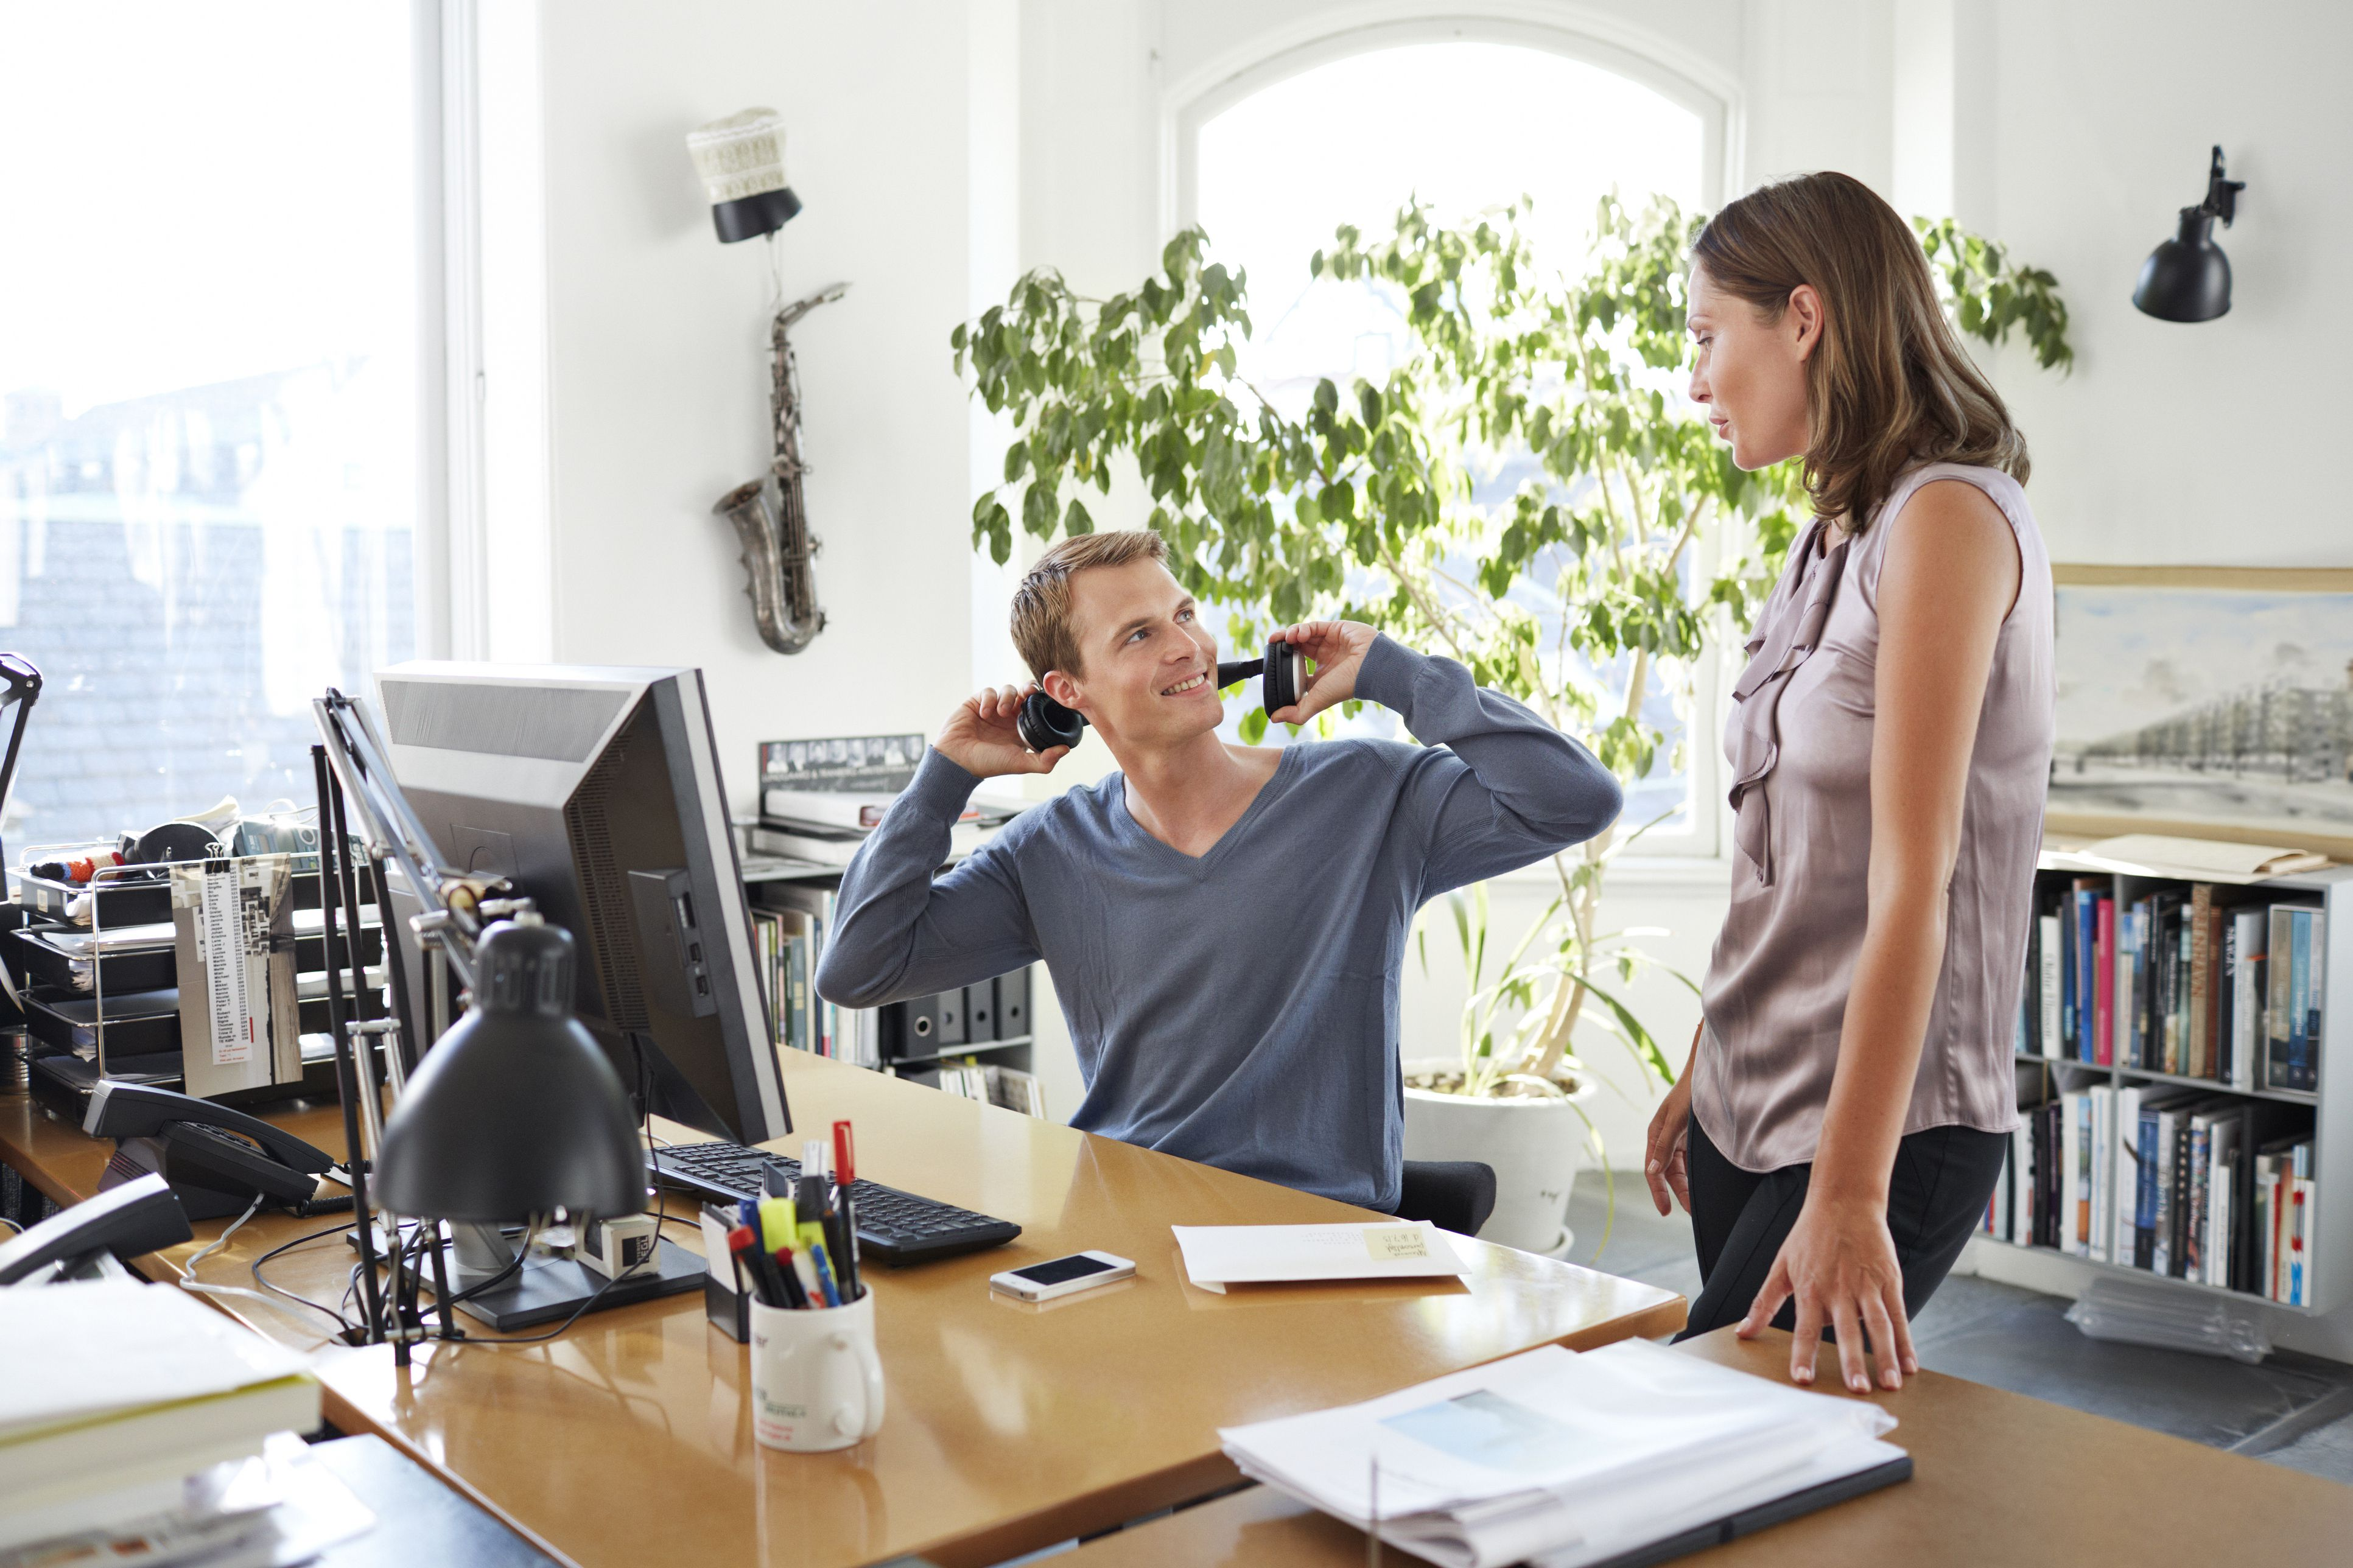 Woman talking to co-worker who is taking off his headphones